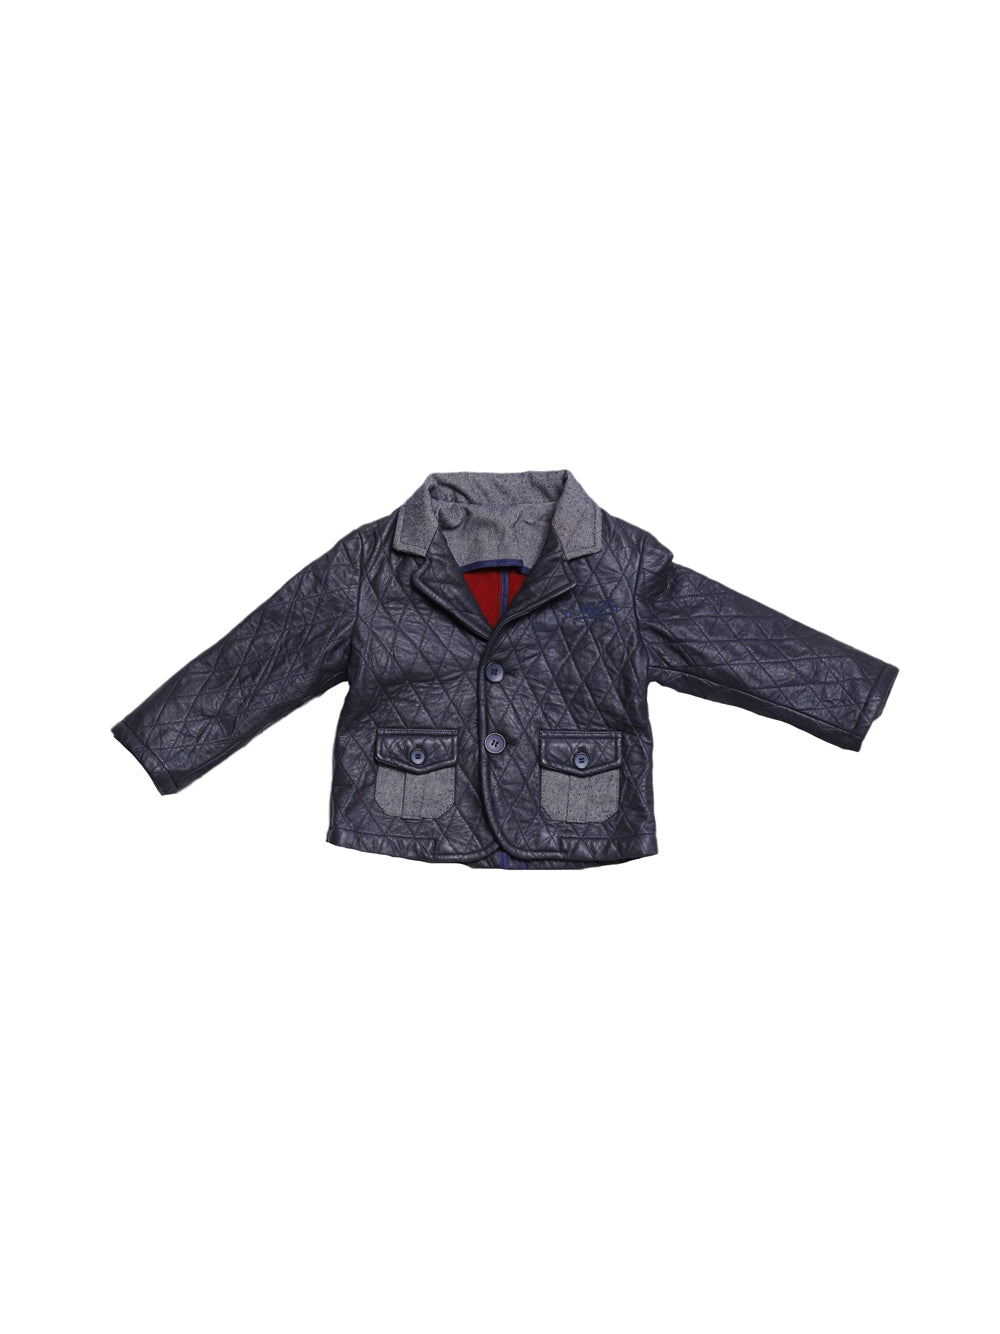 Front photo of Preloved Manuell & Frank Blue Boy's jacket - size 12-18 mths